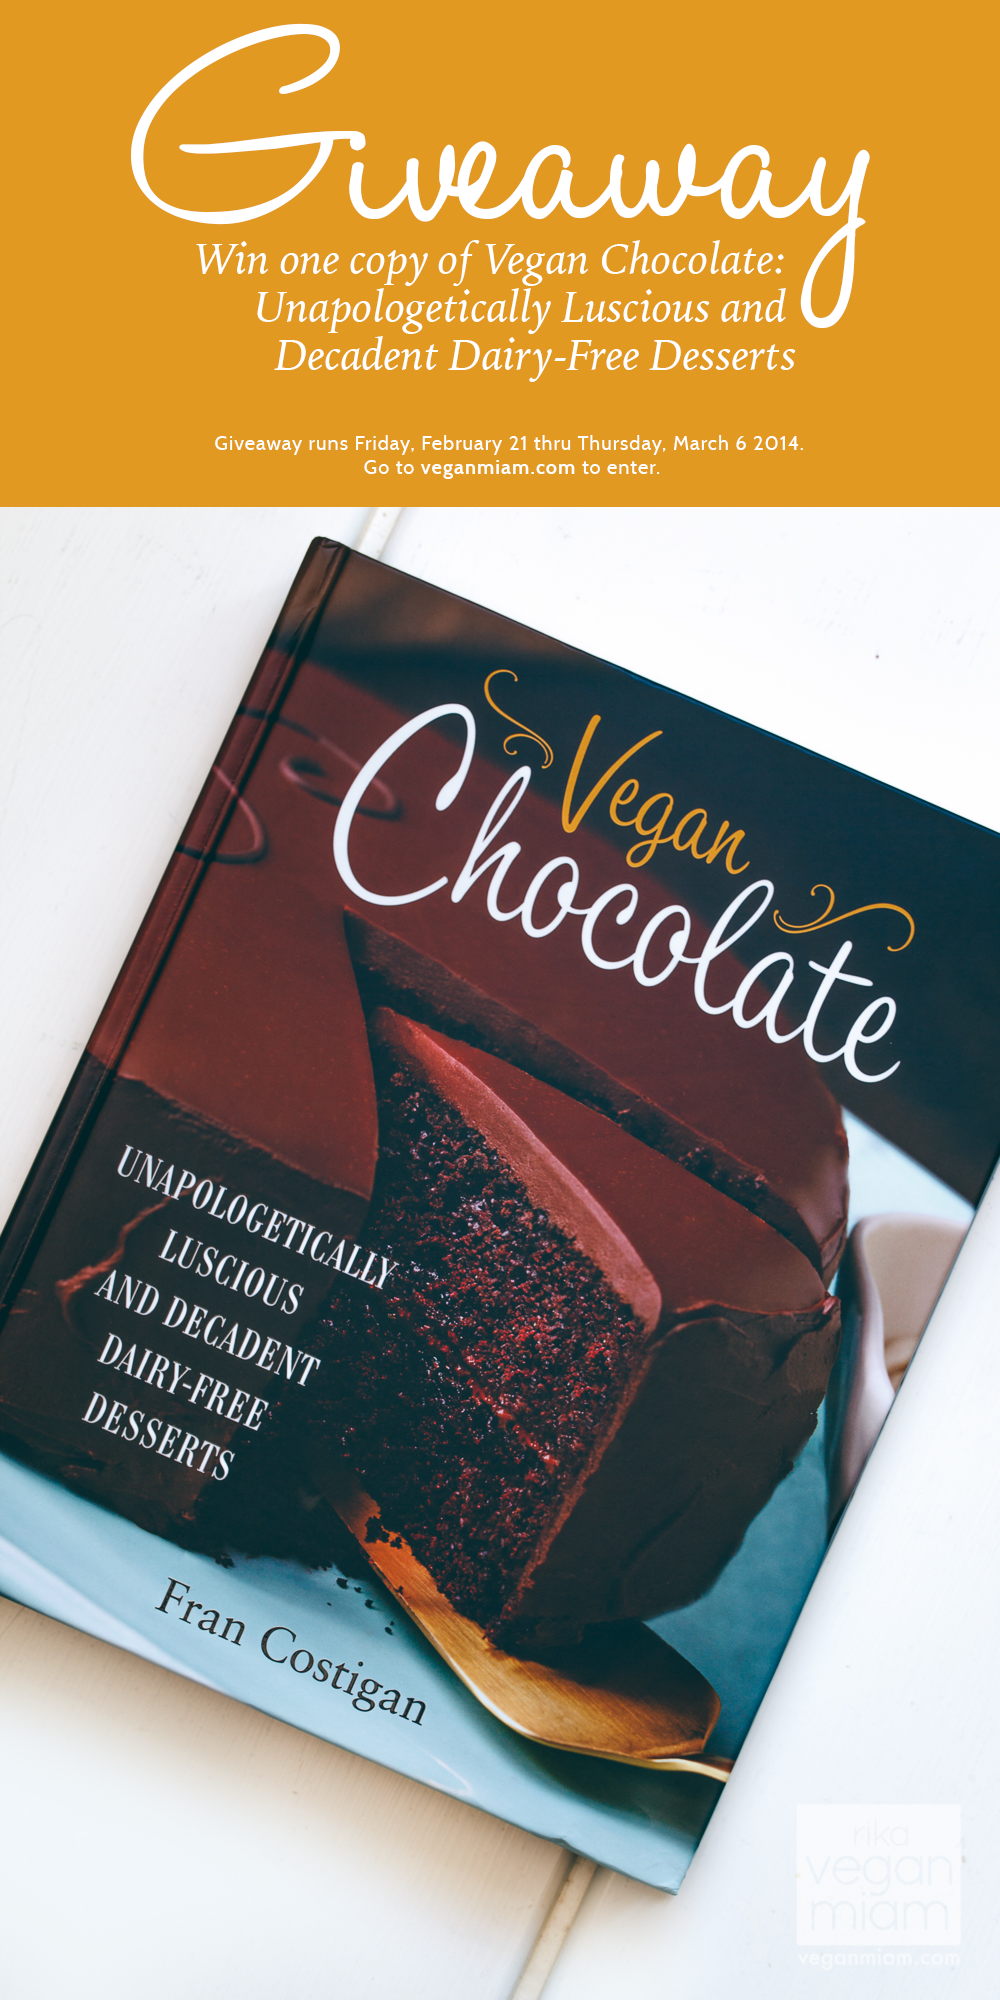 Vegan Chocolate cookbook